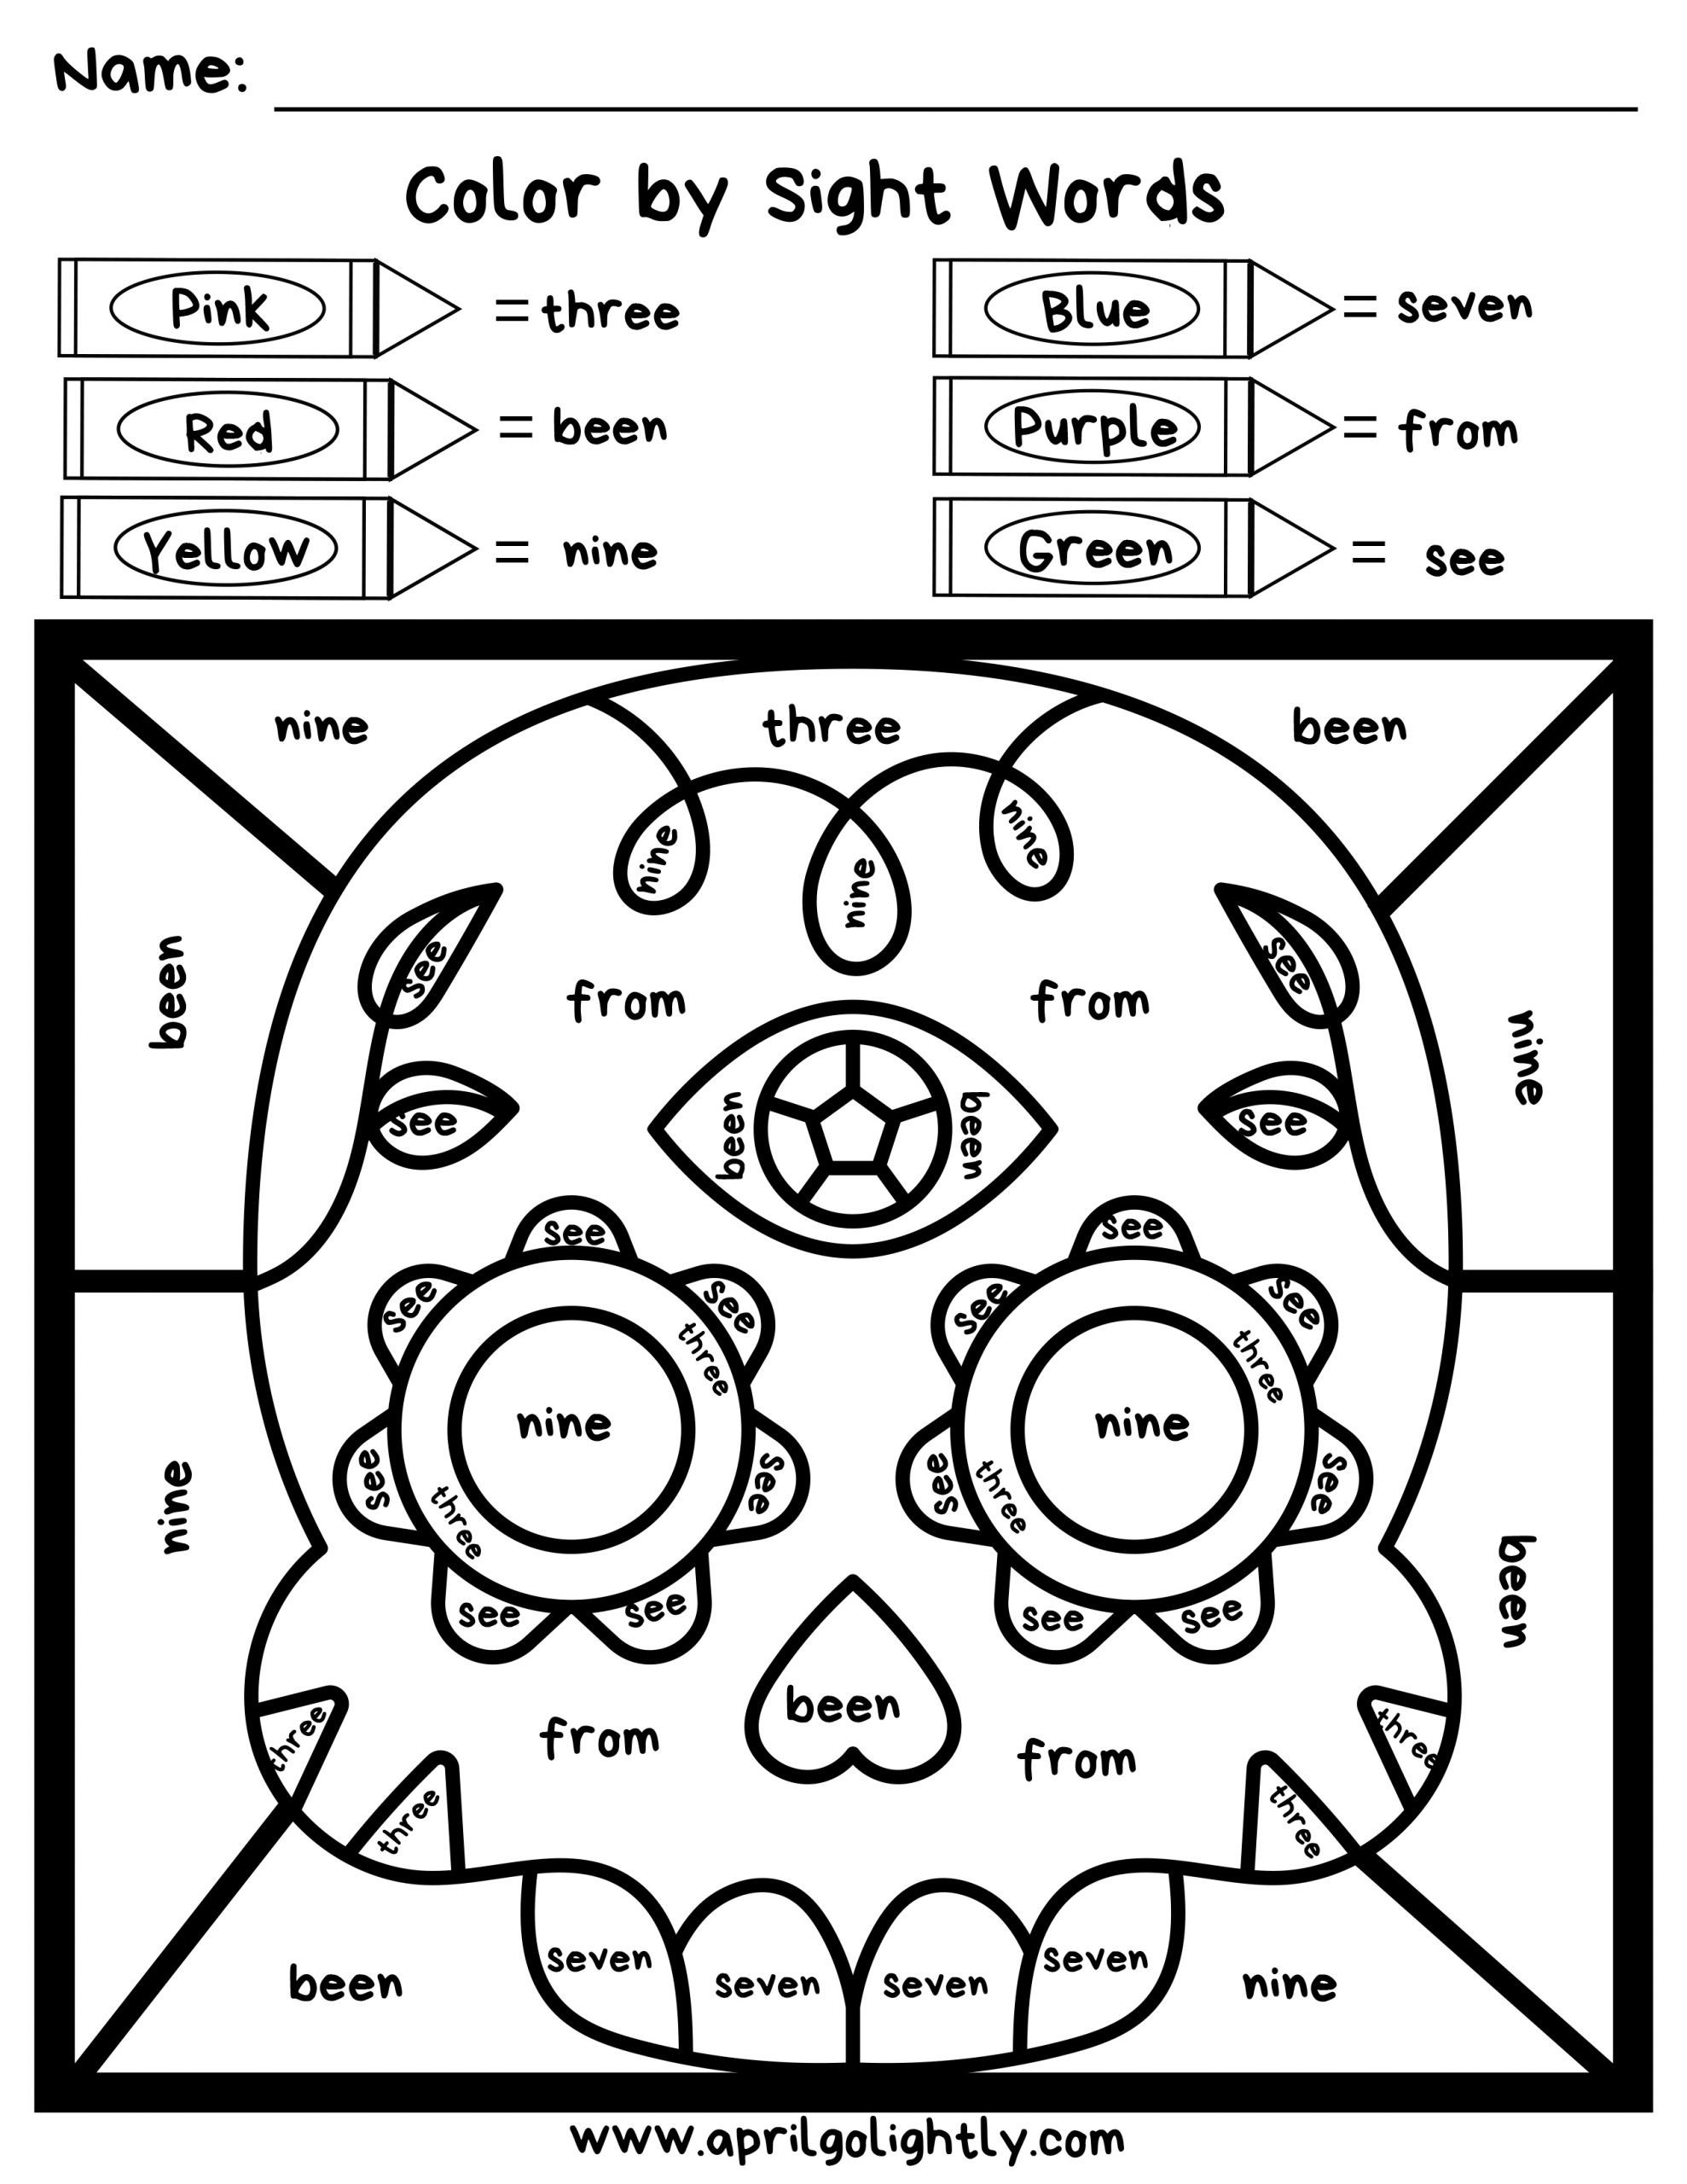 free sight word coloring pages worksheets pdf preschool games for kids to scaled